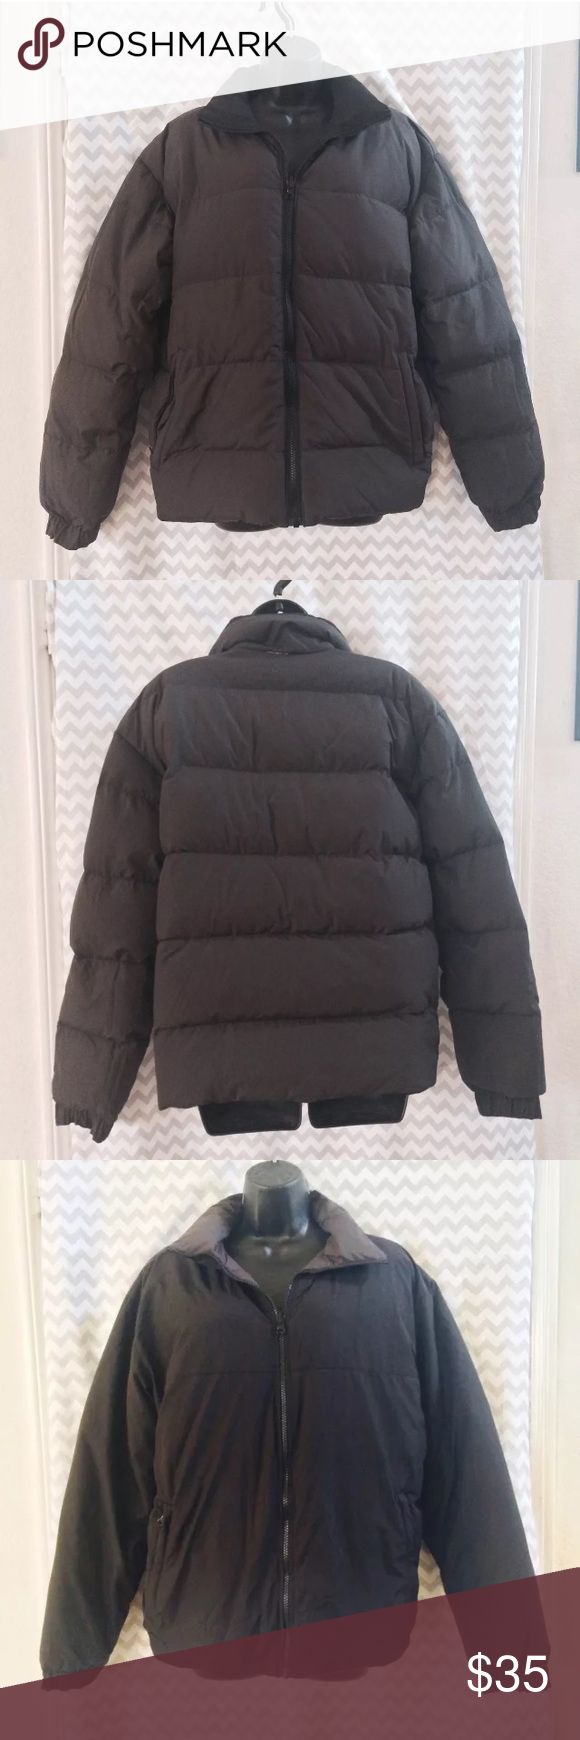 Old Navy Reversible Puffer Jacket in Black / Grey • Old Navy brand  • Reversible puffy jacket with down and waterfowl feathers  • Shell is polyester  • Black/gray  • Size Small  • In gently used condition, no stains or rips. Old Navy Jackets & Coats Puffers